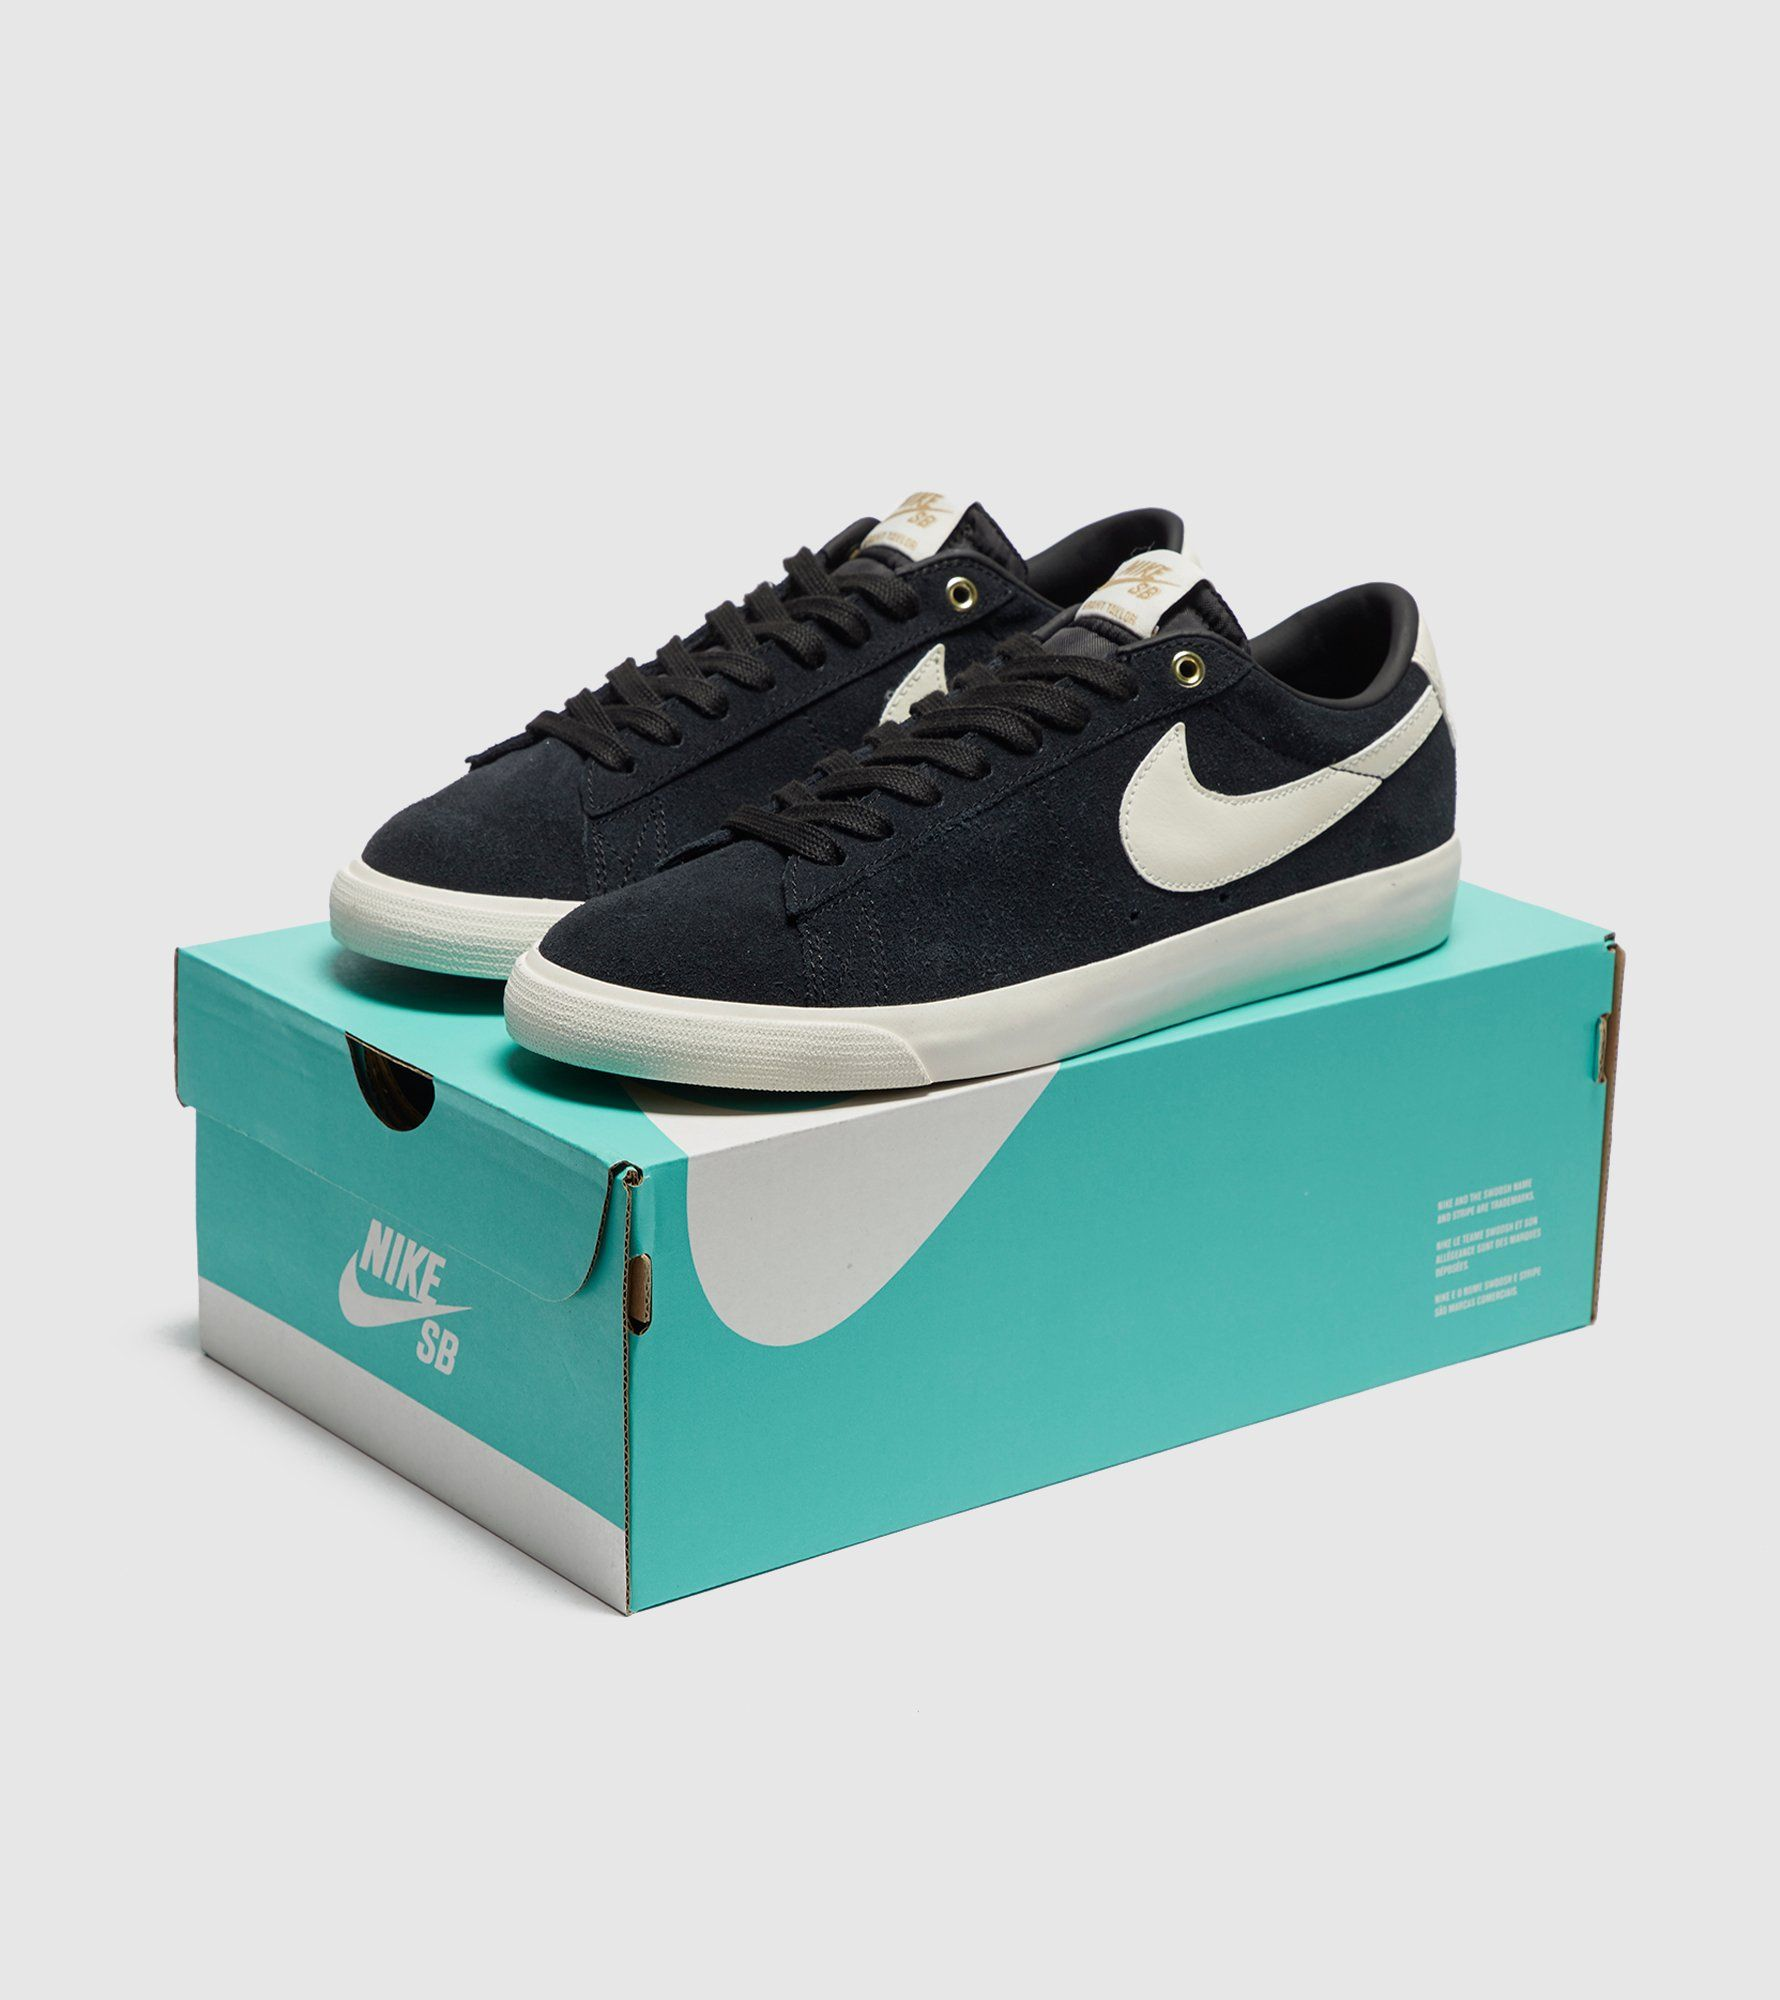 Nike SB Zoom Blazer GT Low